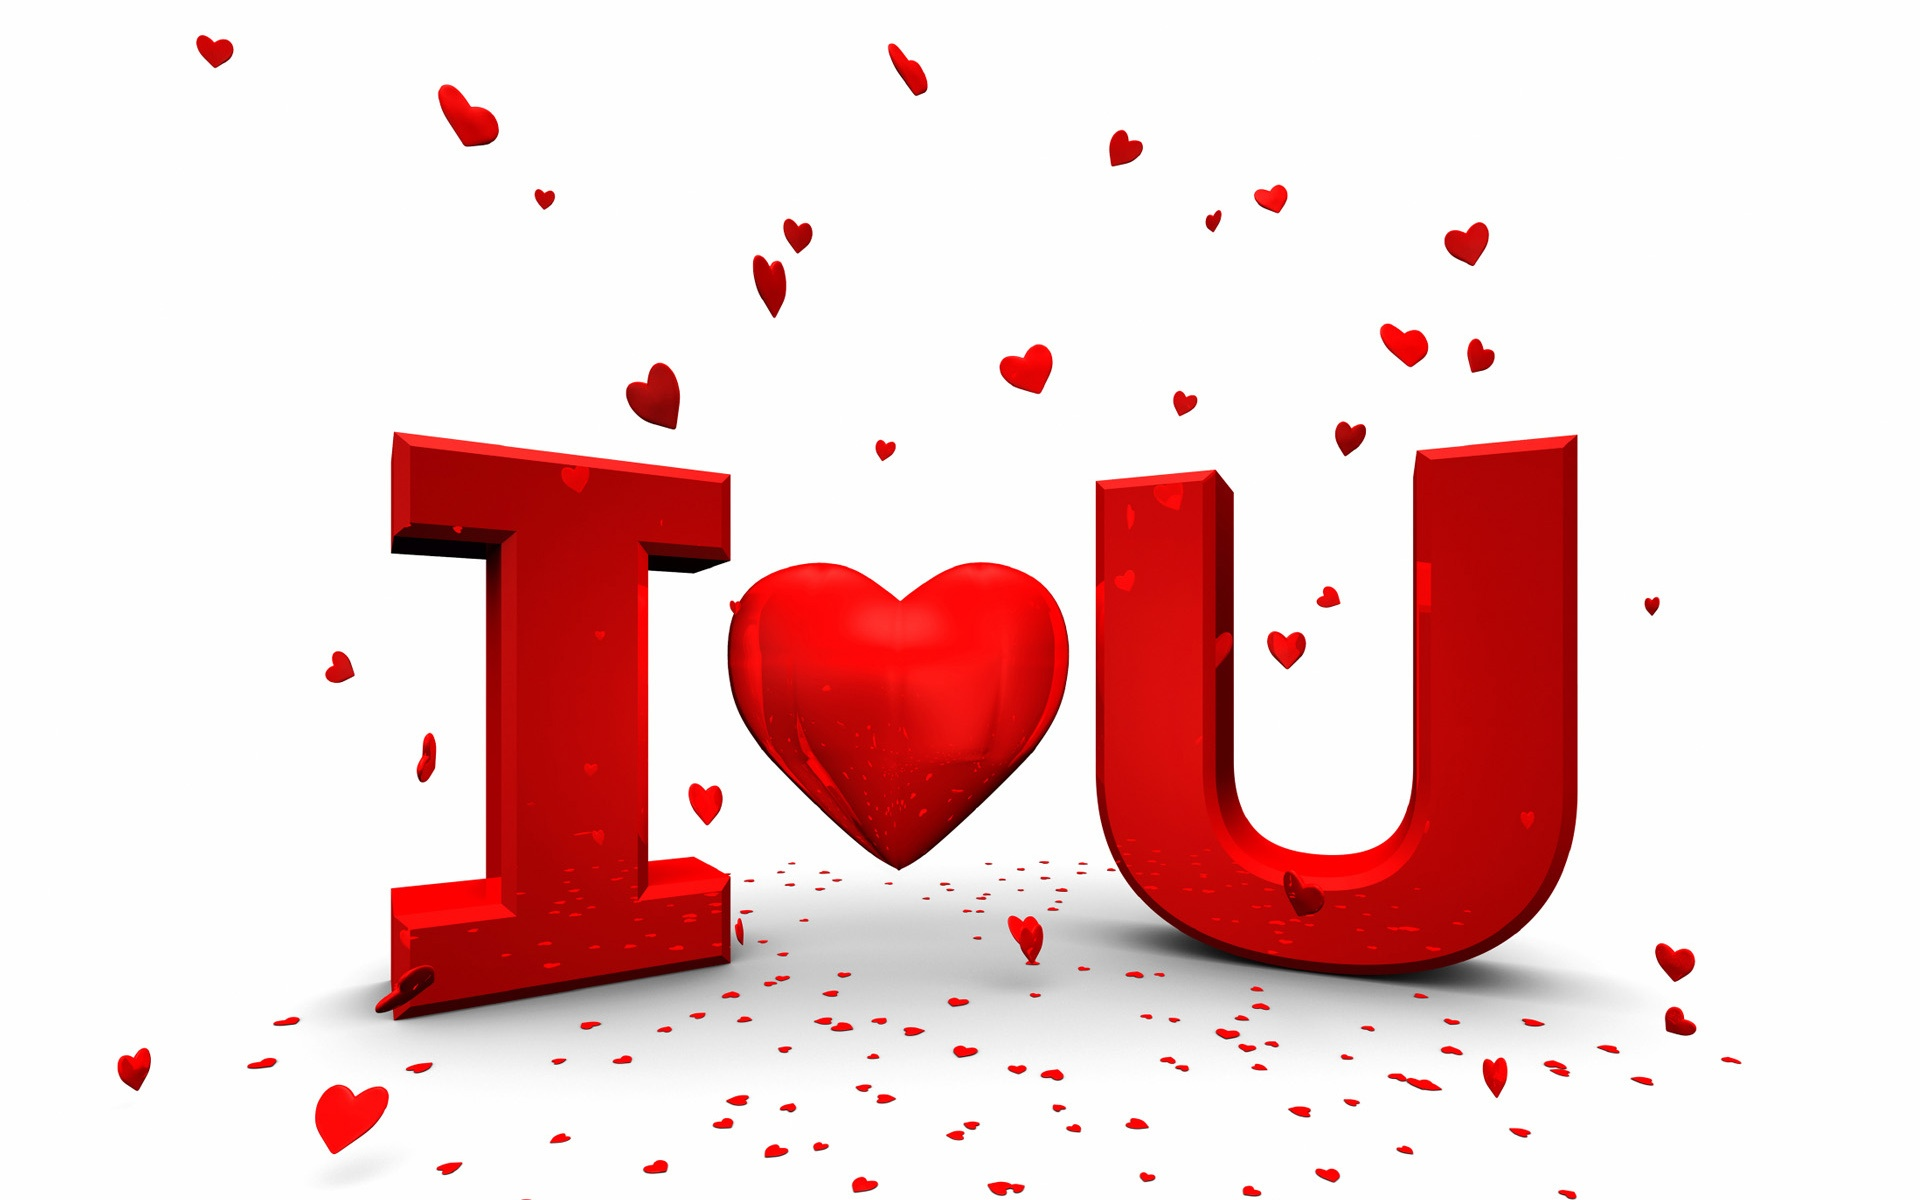 I LOVE YOU. i_love_you____by_this_is_the_life2905-d30bx3j. I_love_you_by_Pamba. i_love_you_desktop_wallpaper_03. i_love_you_hd-1920x1200